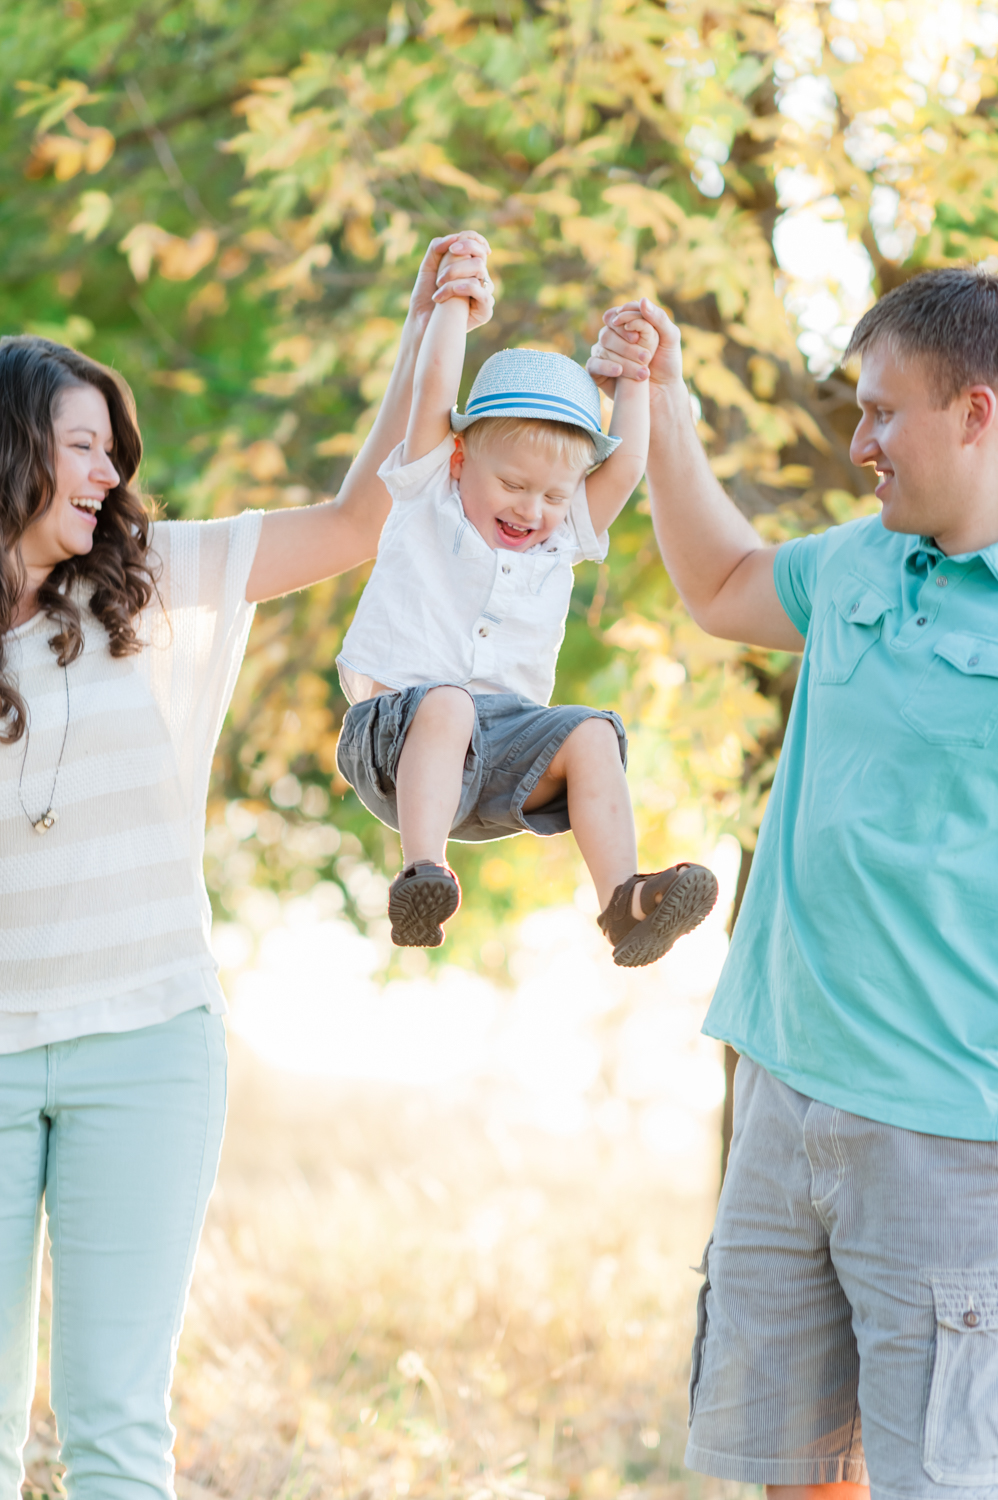 Family Portrait Photography in Dayton, Ohio by Andrea Dozier